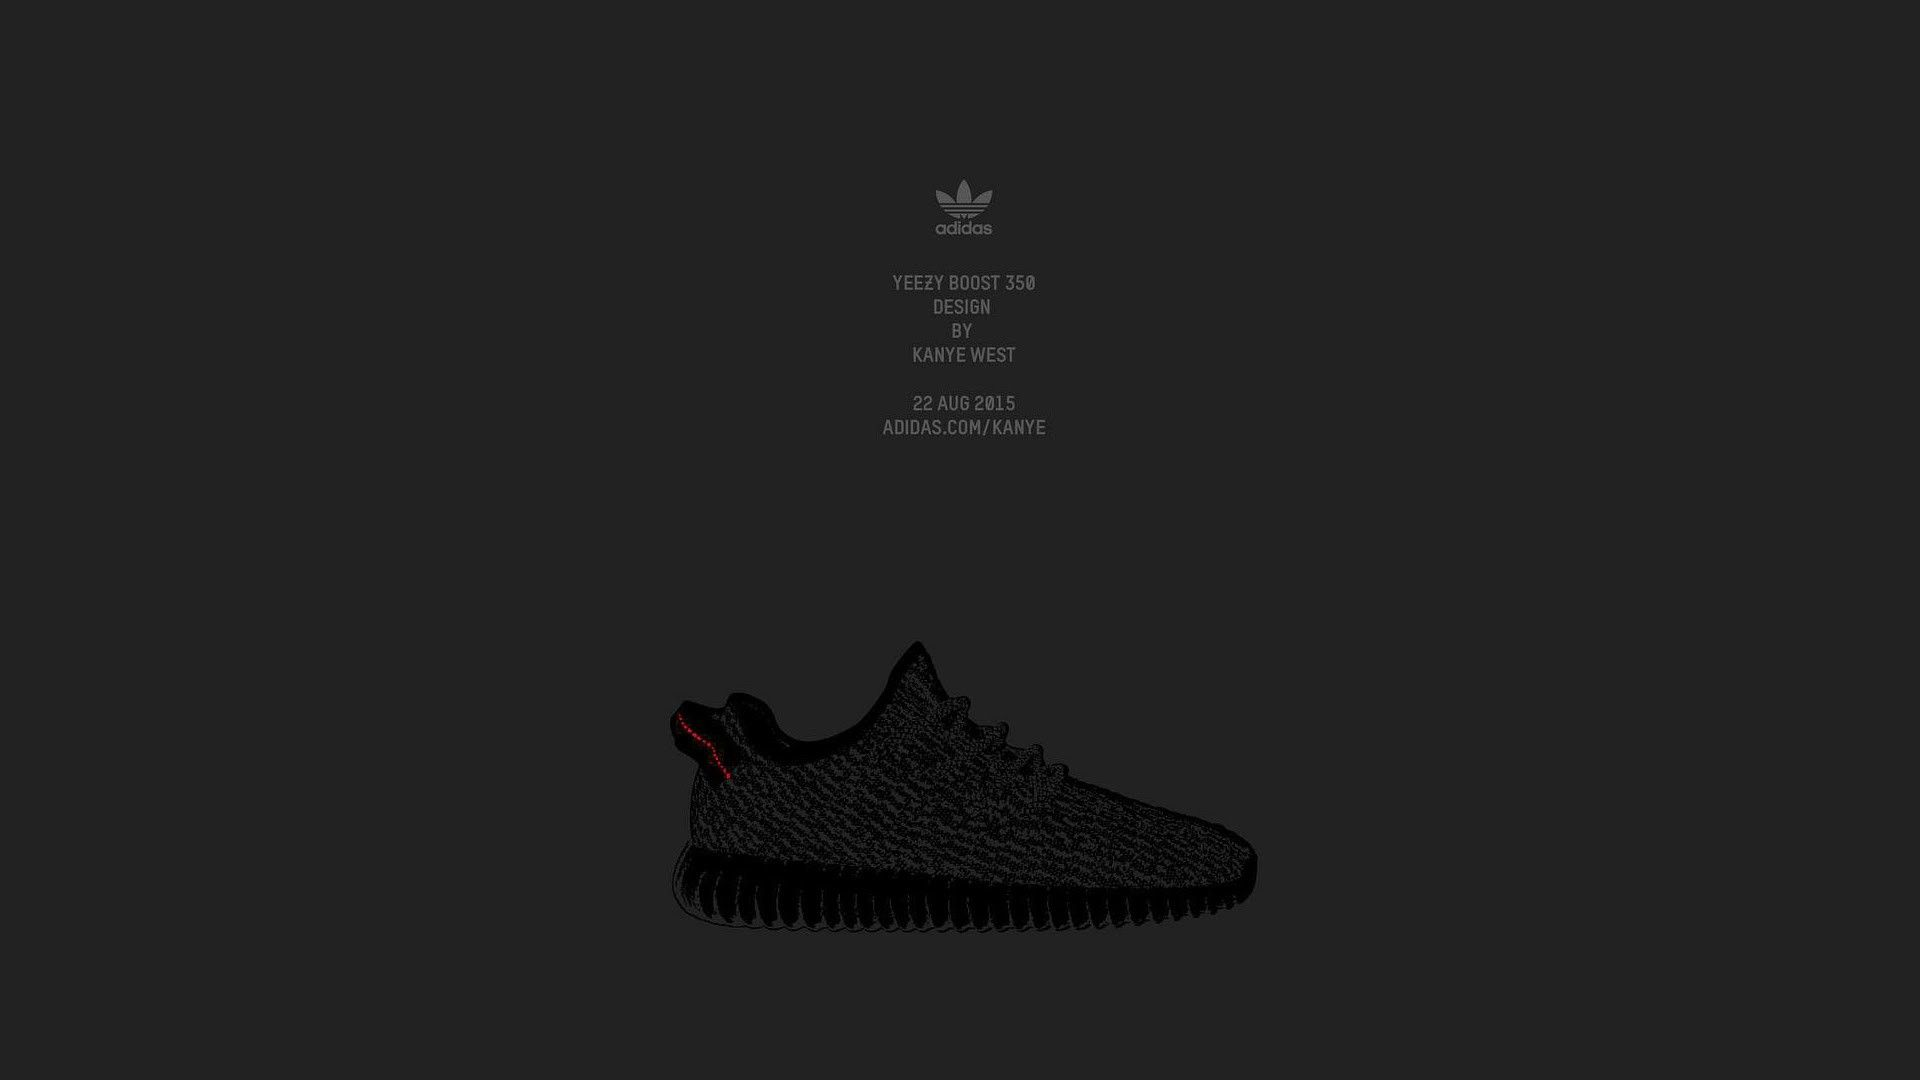 Adidas Yeezy Kanye West HD Wallpaper